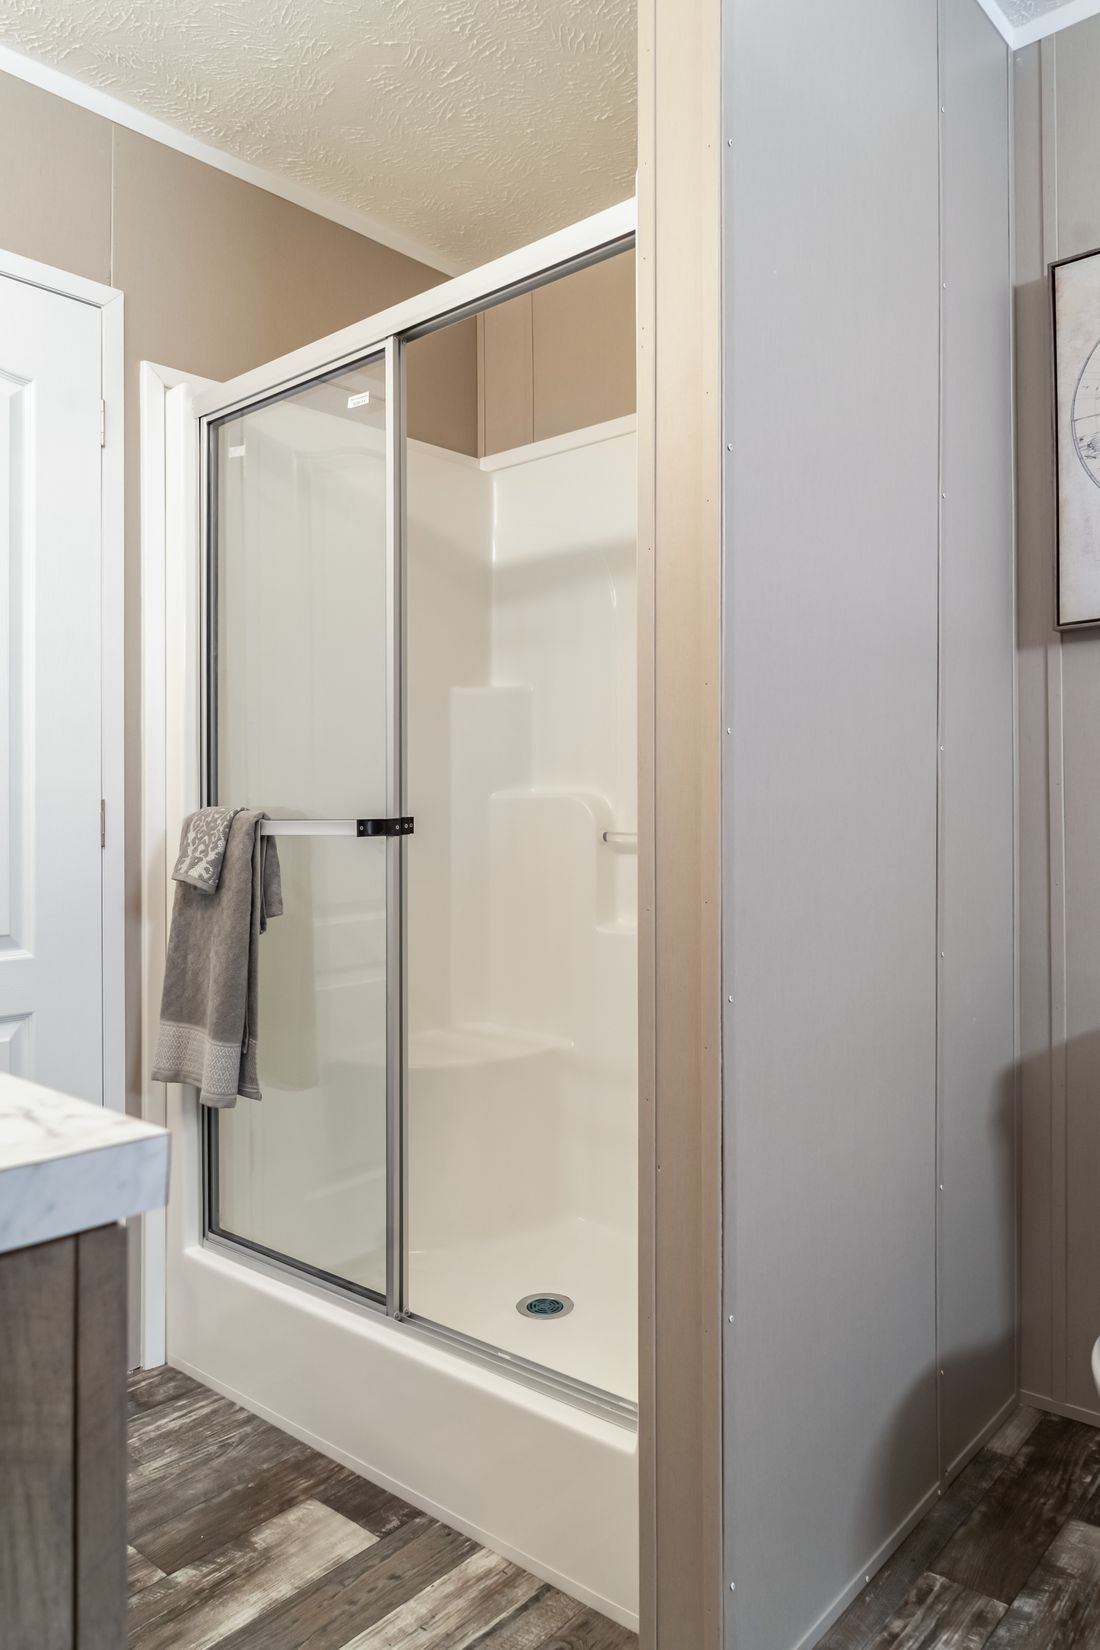 The ULTRA PRO 60 Master Bathroom. This Manufactured Mobile Home features 3 bedrooms and 2 baths.